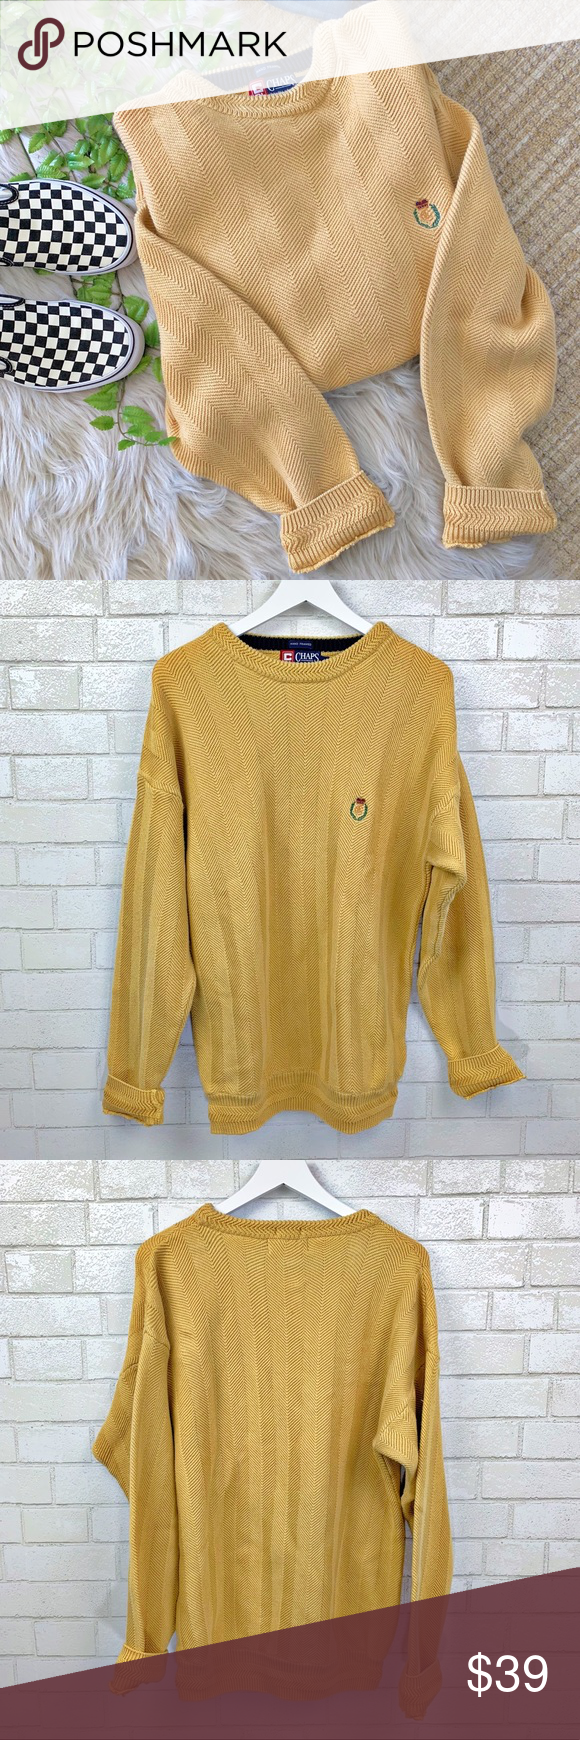 1b3d5057b2 Ralph Lauren Chunky Oversized Yellow Sweater Sz M Vintage chunky hand knit oversized  yellow sweater from Chaps Ralph Lauren. Embroidered crest logo at the ...